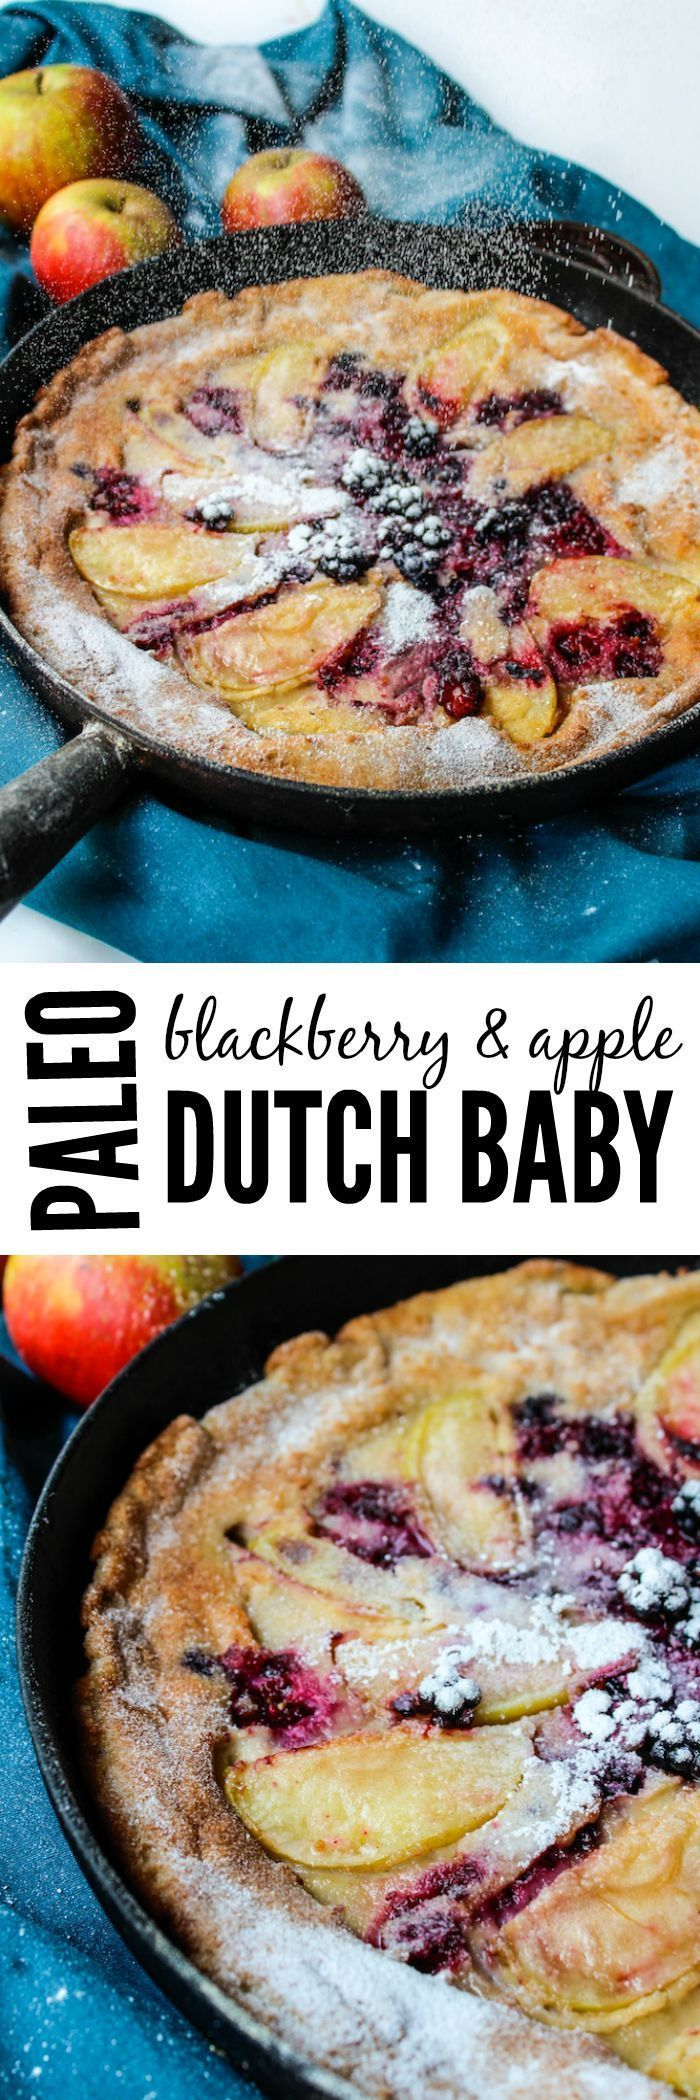 Blackberry & Apple Paleo Dutch Baby www.asaucykitchen... #dutchbaby #pancake